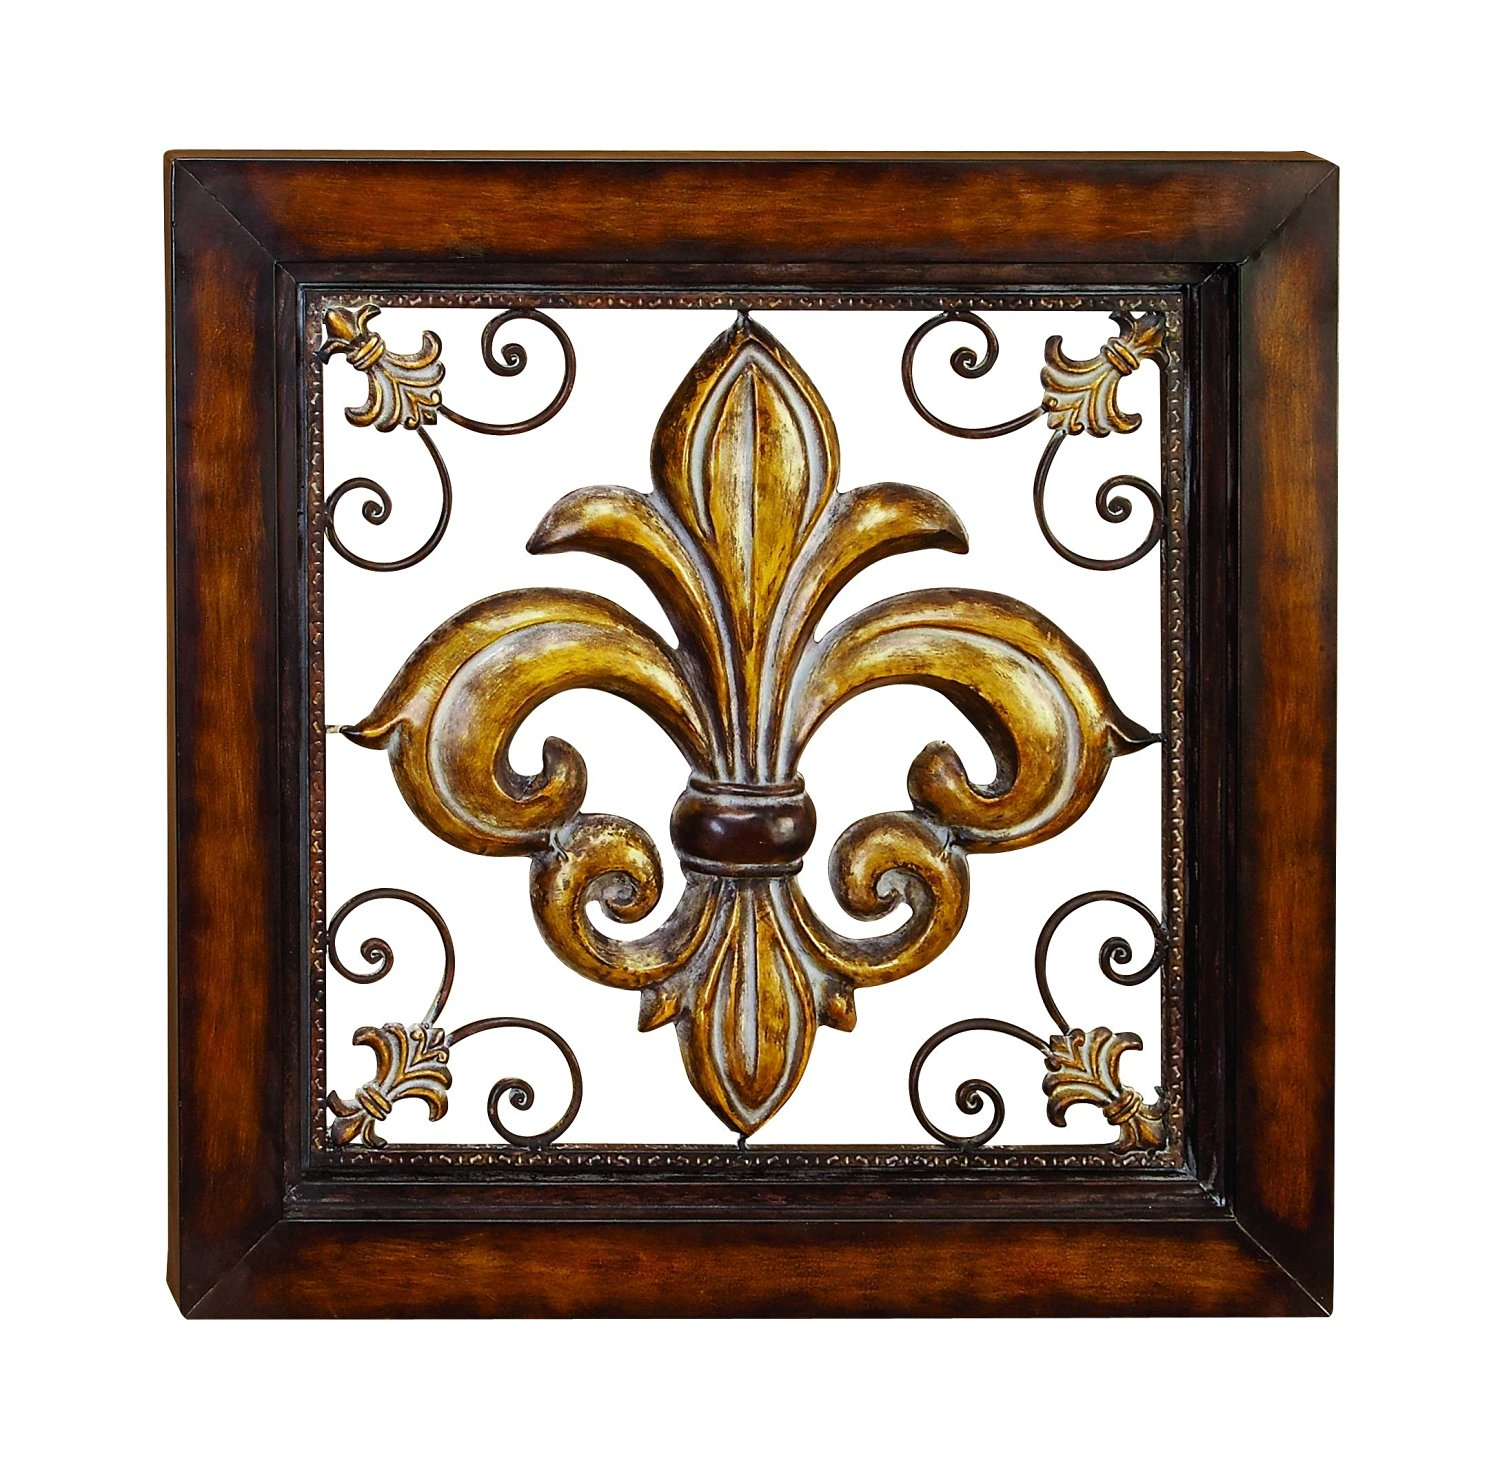 Tuscan Square Wrought Iron Wall Grill with Fleur-De-Lis